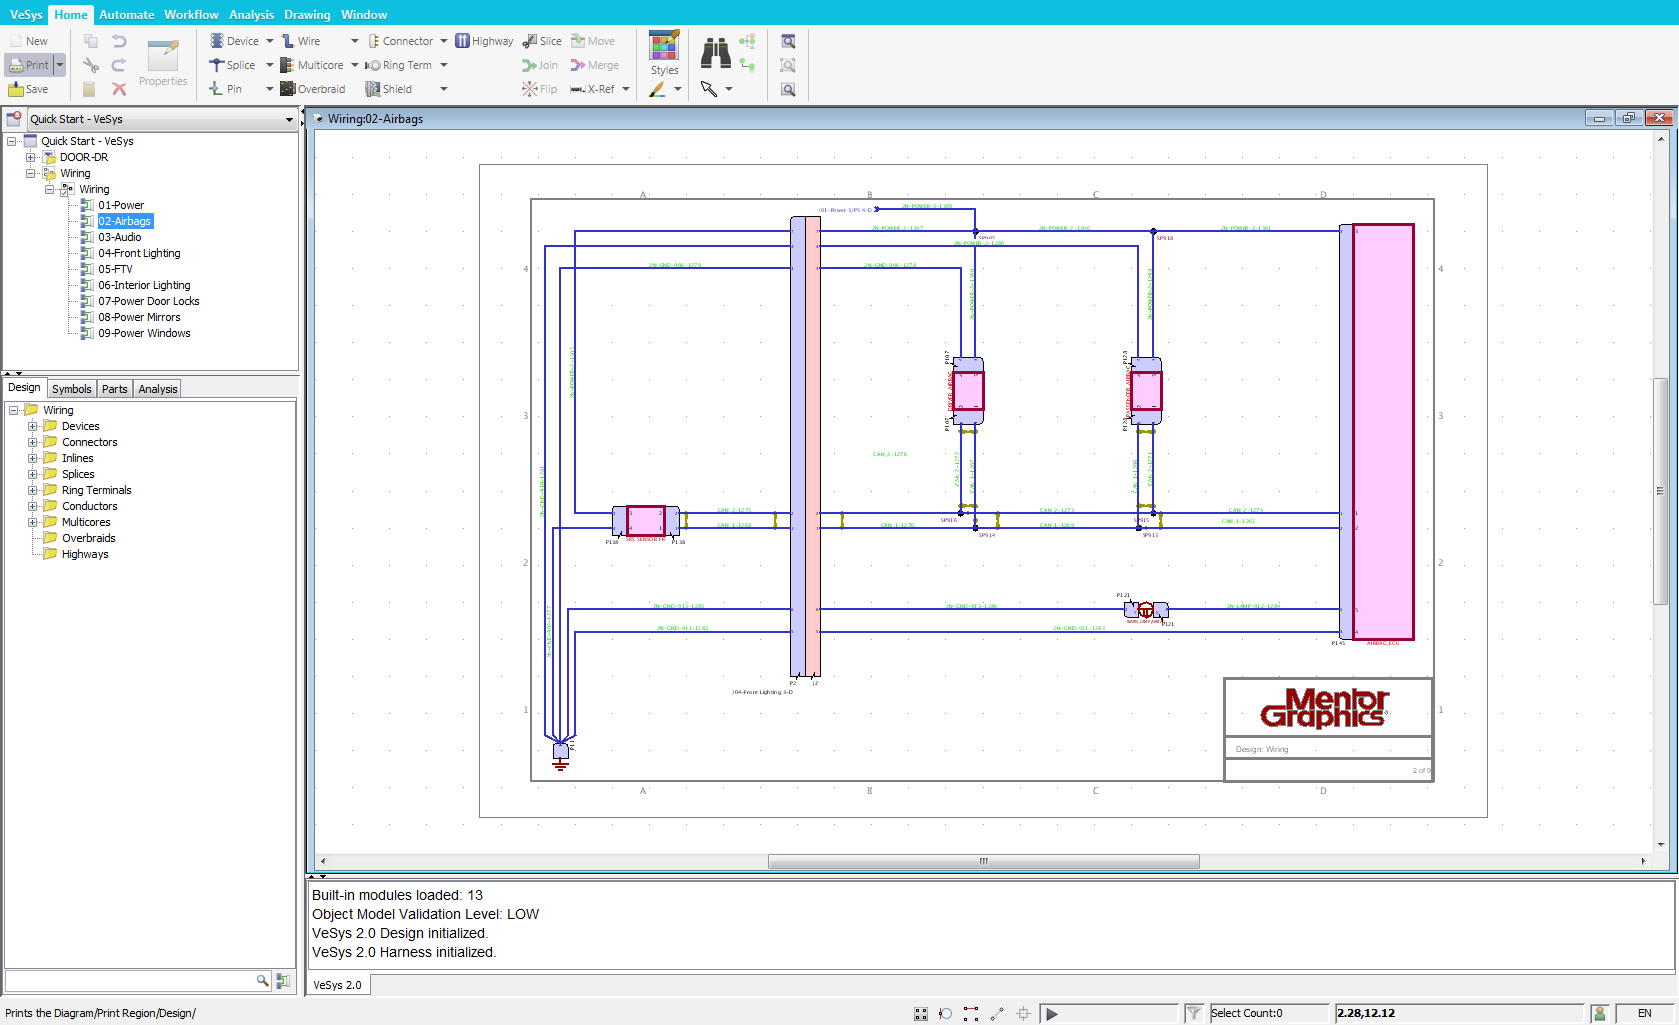 Vesys Design Mentor Graphics Two Schematic Wiring Diagram Is Graphical Authoring Environment For Creating Vehicle Diagrams Via An Intuitive User Interface And Electrically Intelligent Symbols